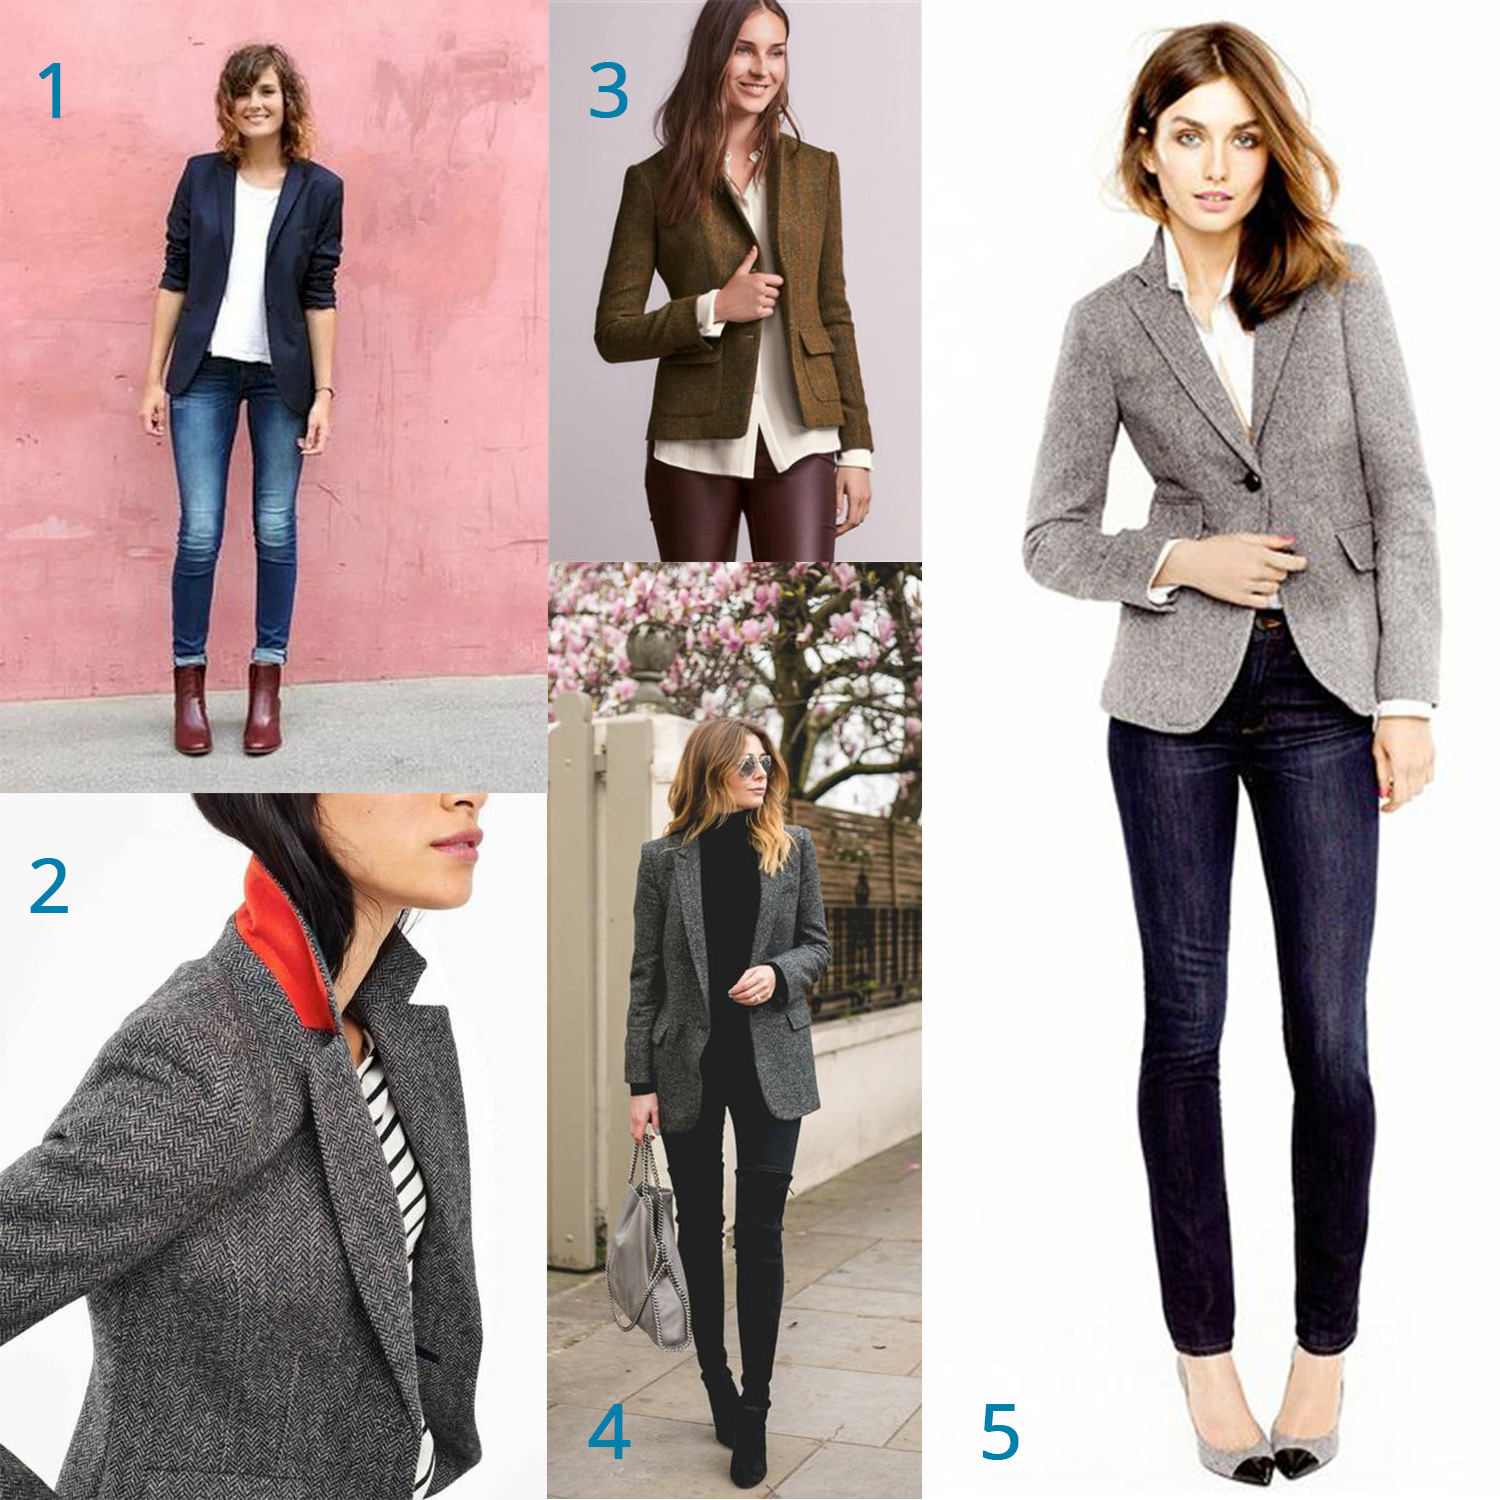 1: Casual day look,  2: Contrast collar inspiration ,  3: Business causal with an edge ,  4: Travel uniform ,  5: Lunch meeting